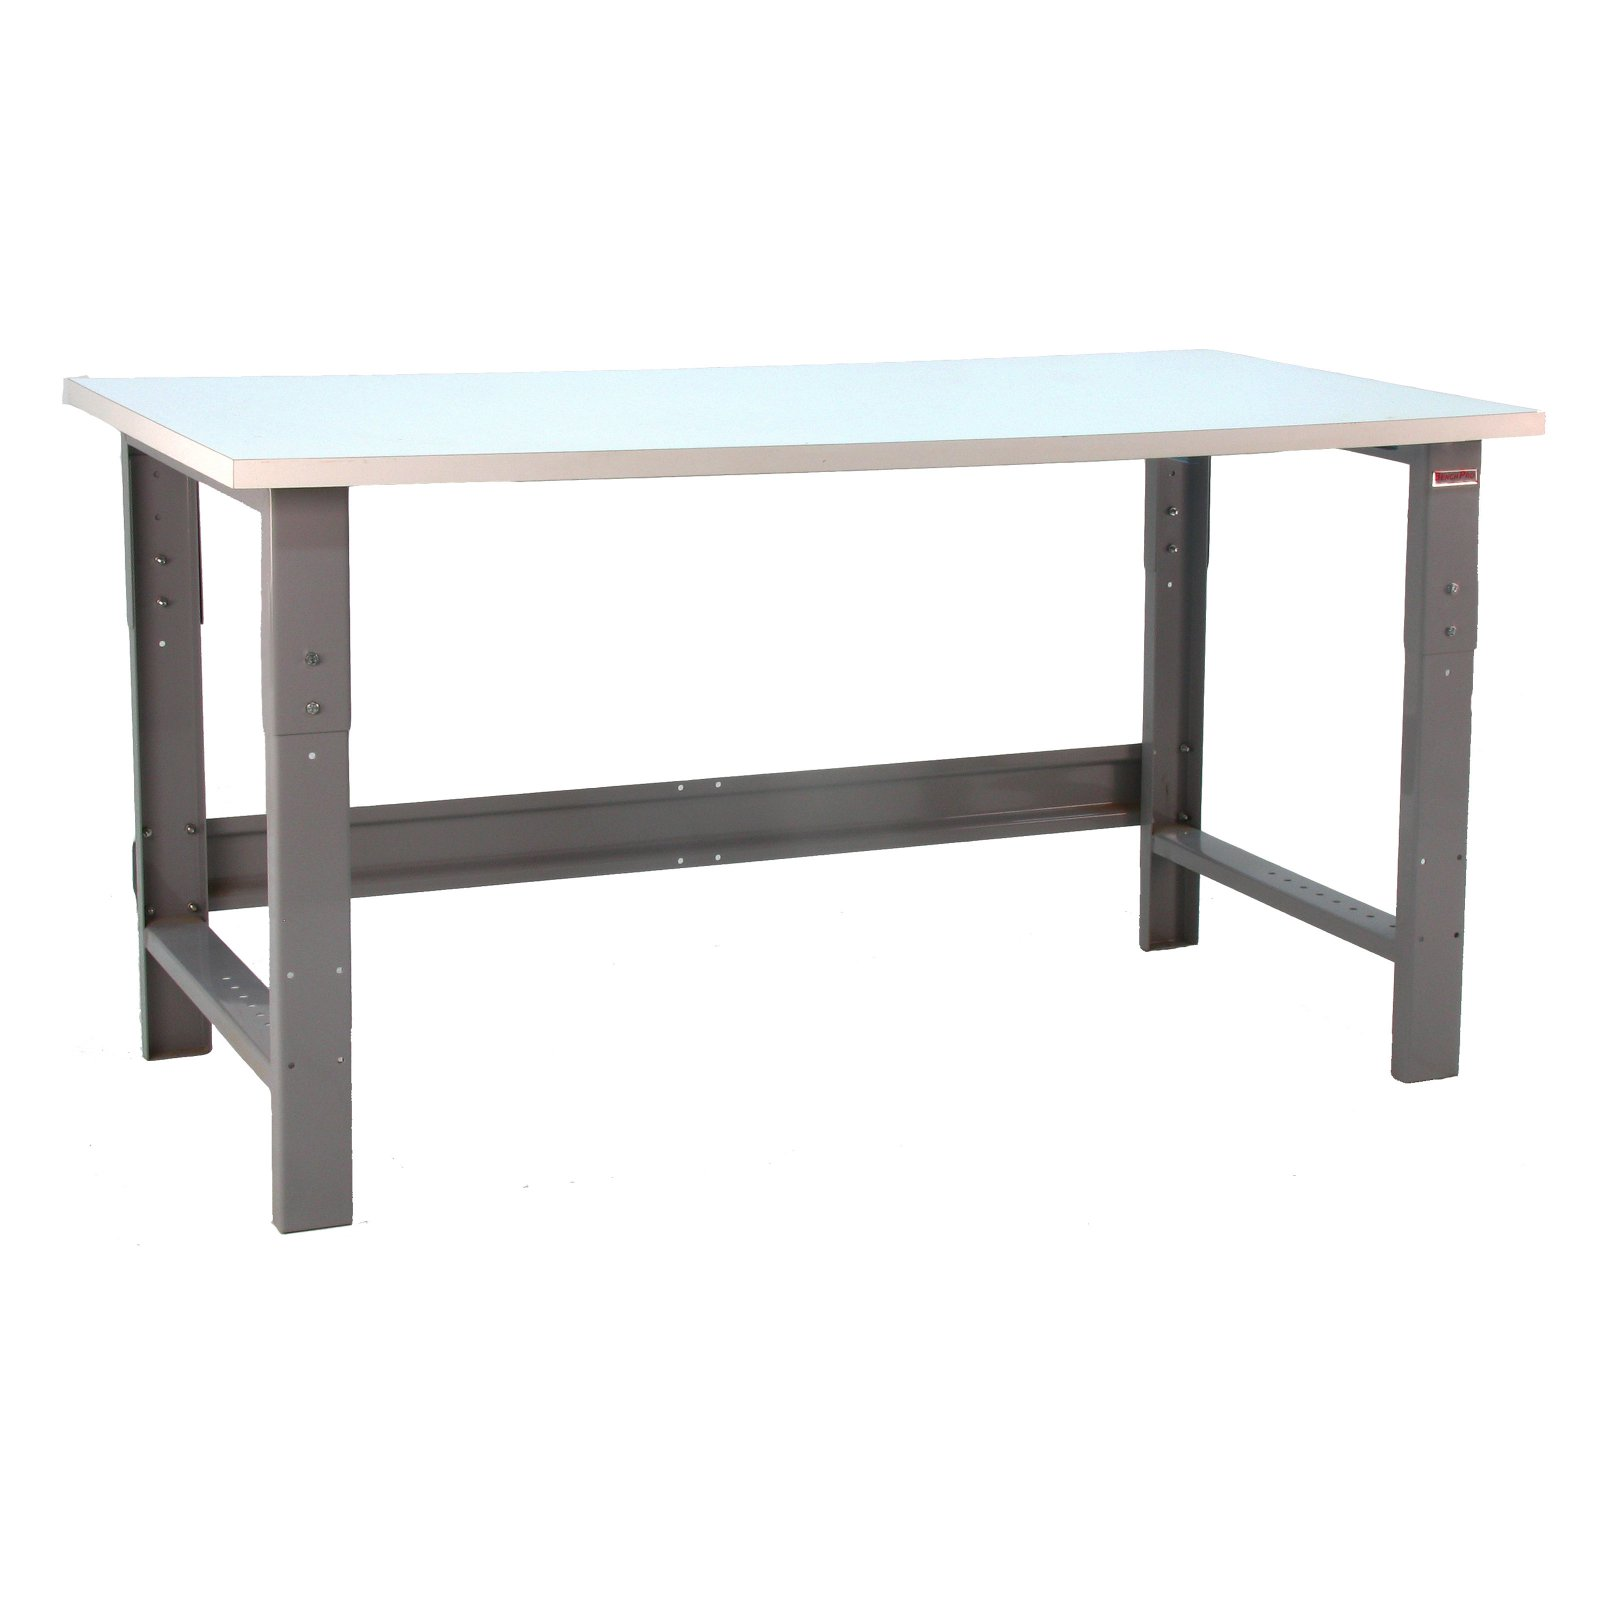 Bench Pro Roosevelt 1600 lb. Workbench with Square Edge Laminate Top by Bench Pro